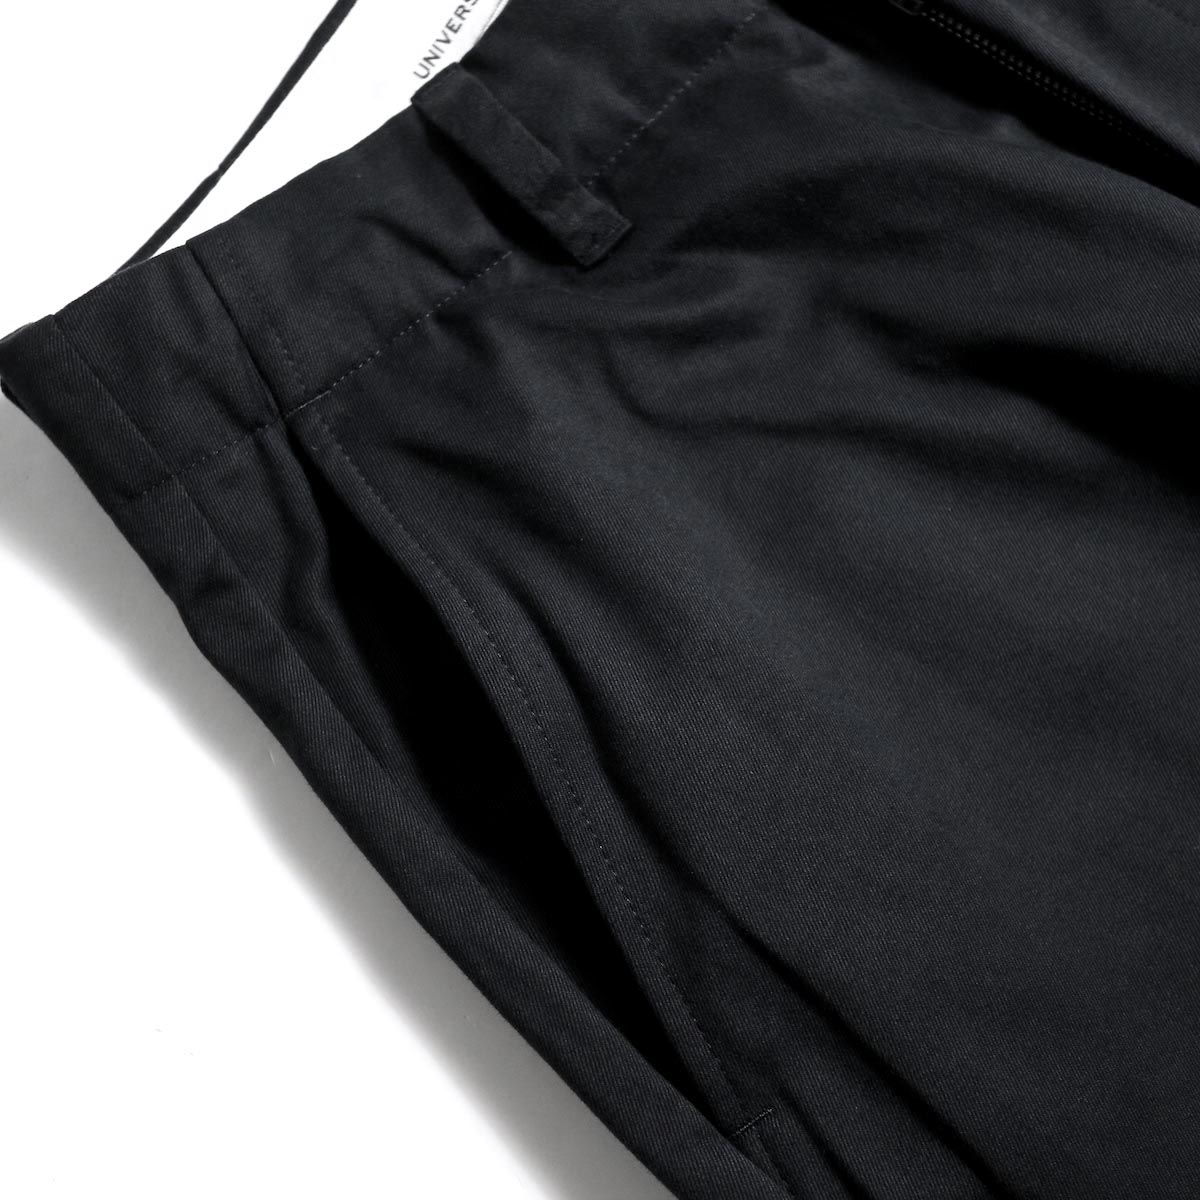 UNIVERSAL PRODUCTS / No Tuck Wide Chino Trousers (Black)ポケット